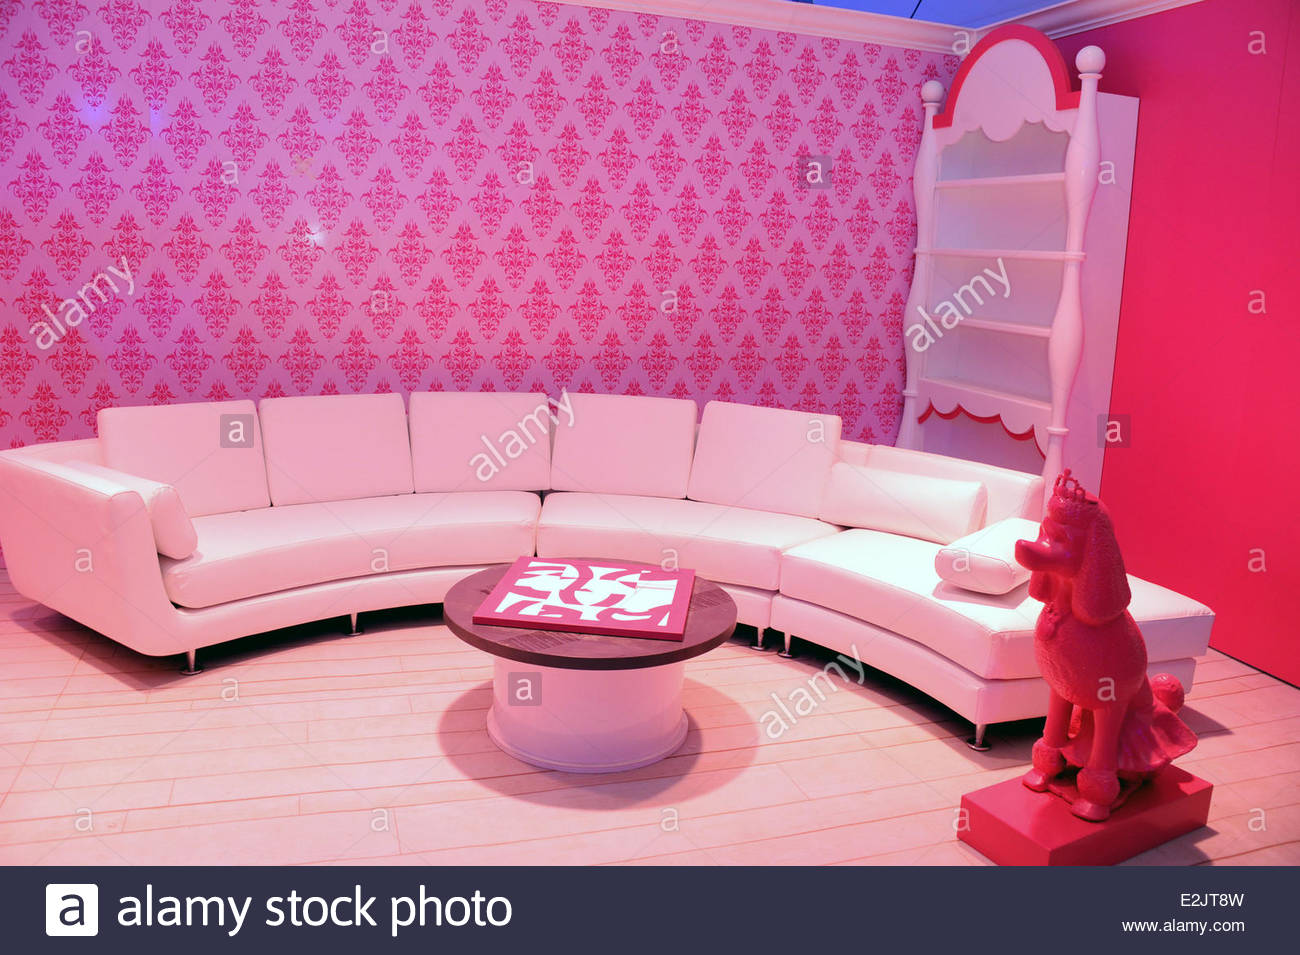 Living room at a guided tour at barbie the dreamhouse experience in mitte where berlin germany when 12 apr 2013